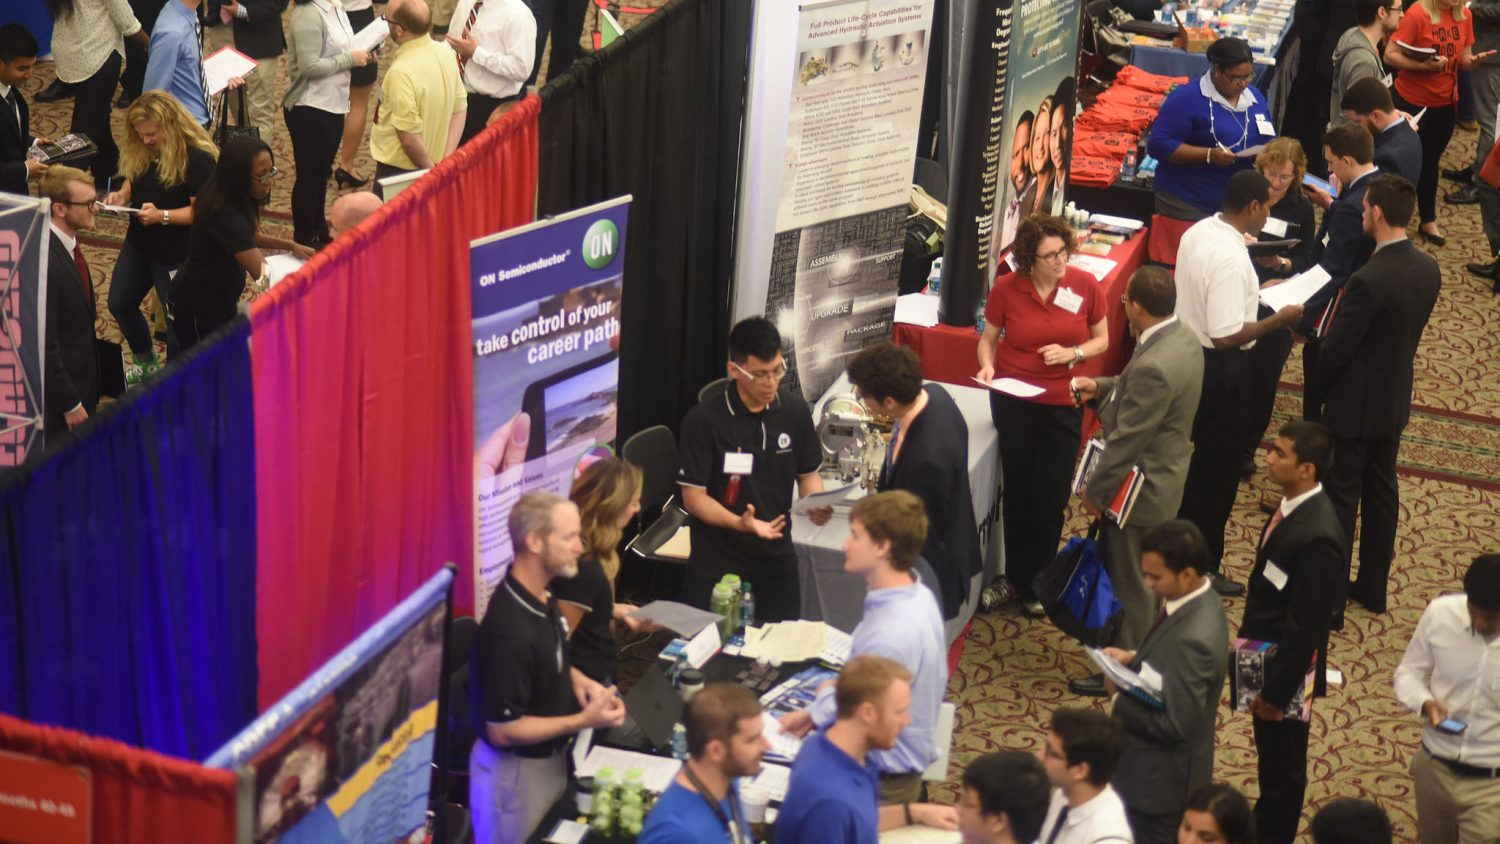 The Engineering Career Fair brings in over 6,000 students, job-seekers and alumni.